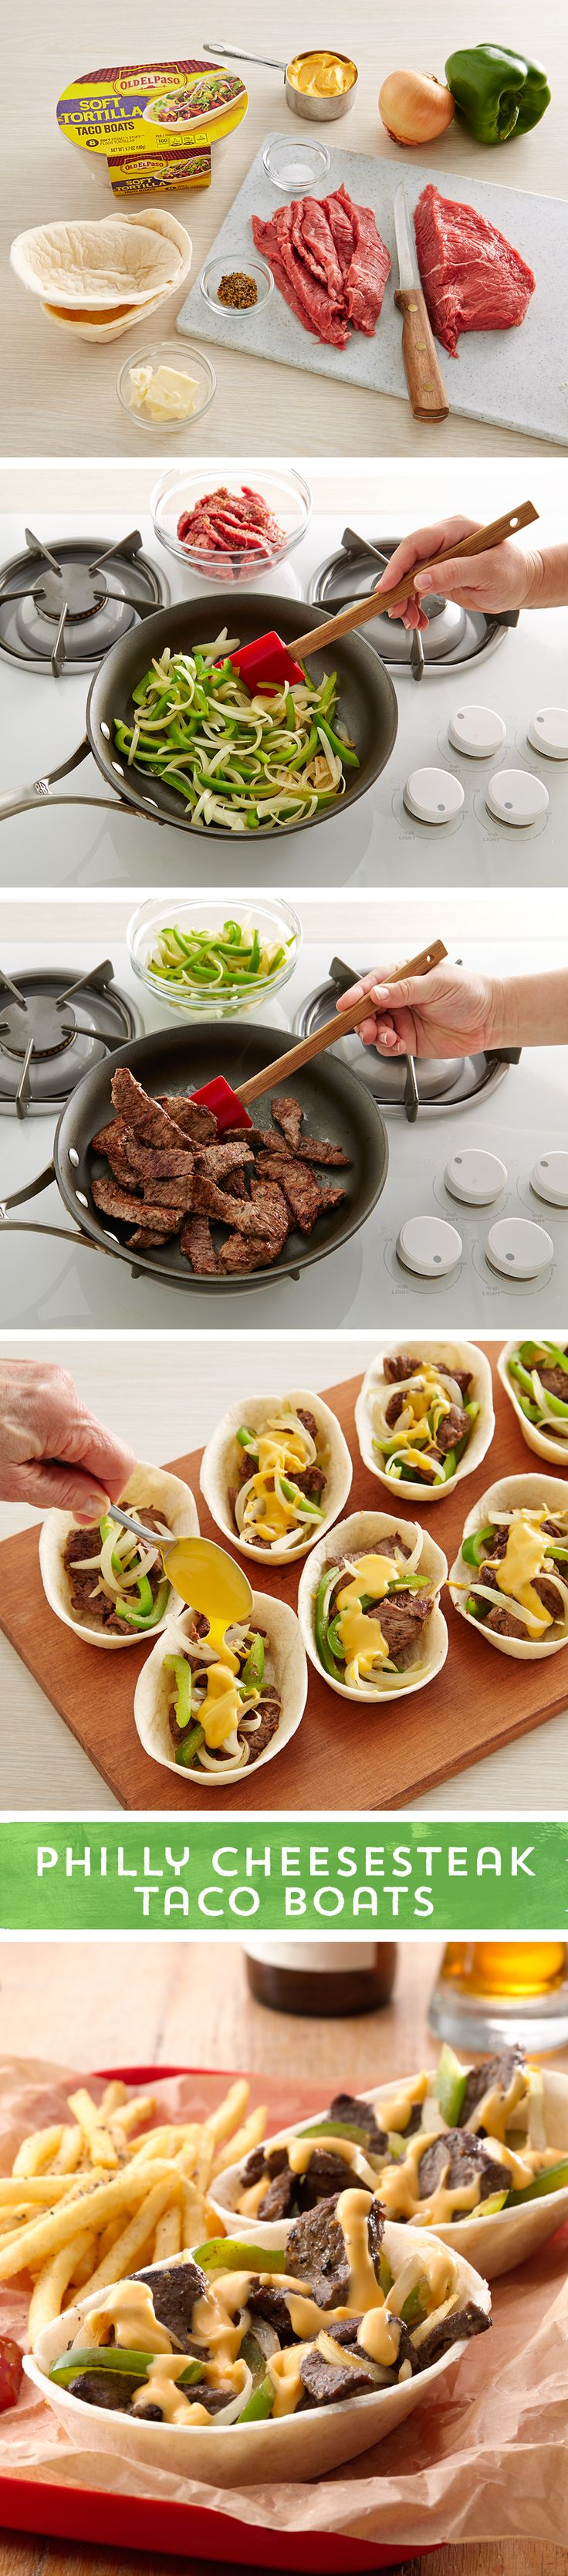 Whether you were born and raised in West Philadelphia won't matter once you sink your teeth into these Philly Cheese Steak Taco Boats! Made with thin-sliced beef and the classic peppers and onions combo, then piled high in an Old El Paso Taco Boat™, and topped off with cheese... these taco boats are sure to bring you back to the classic east coast favorite. Ready to eat in just 30 minutes!